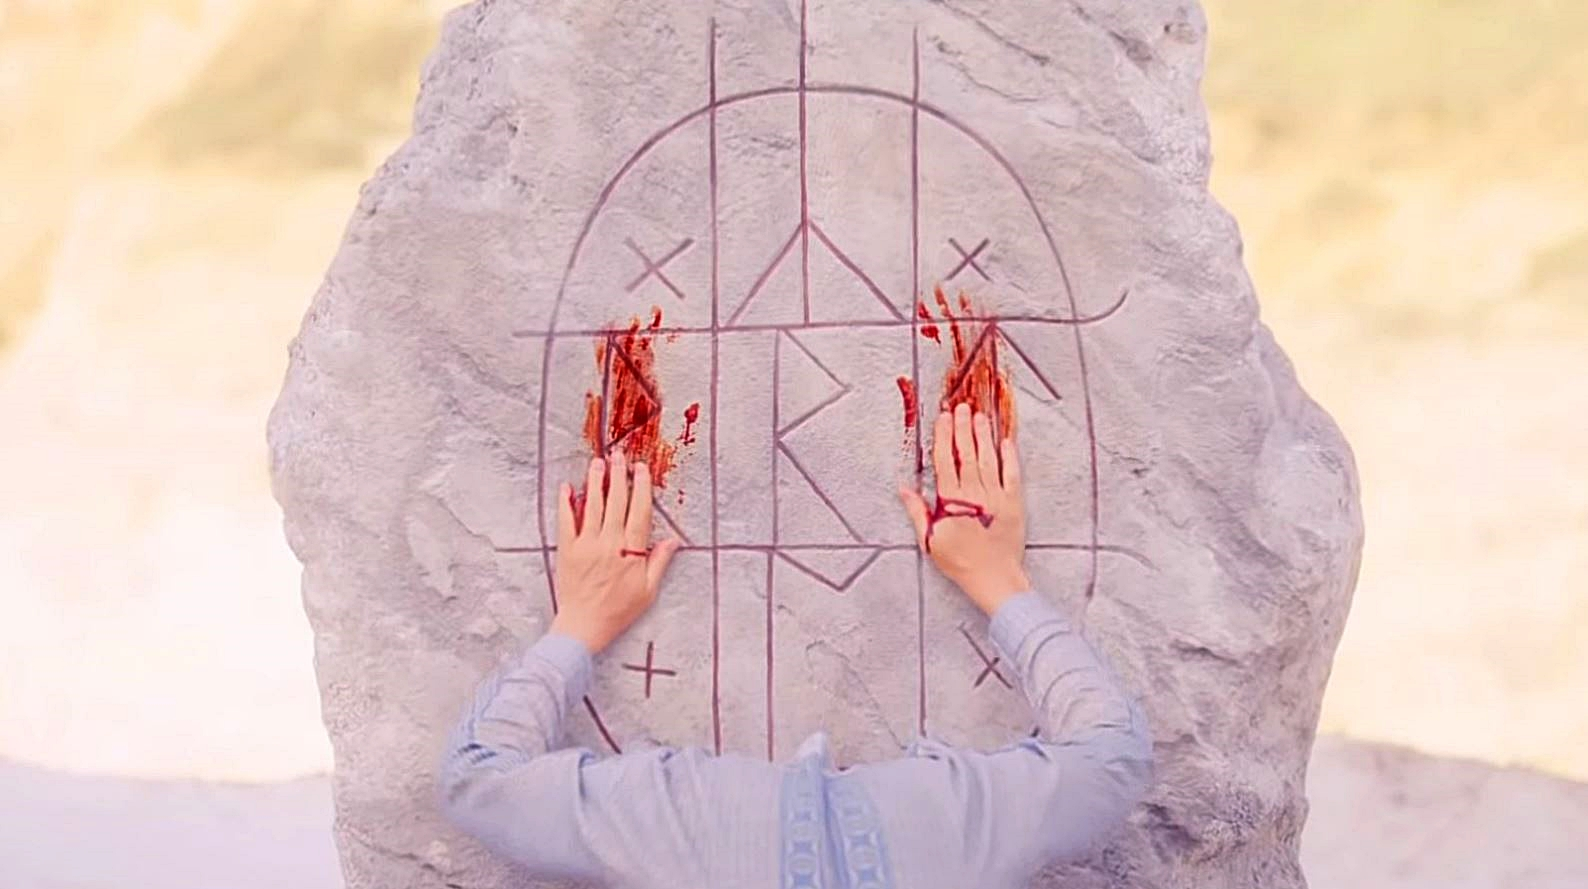 Midsommar (2019) still from horror - cultural hater review